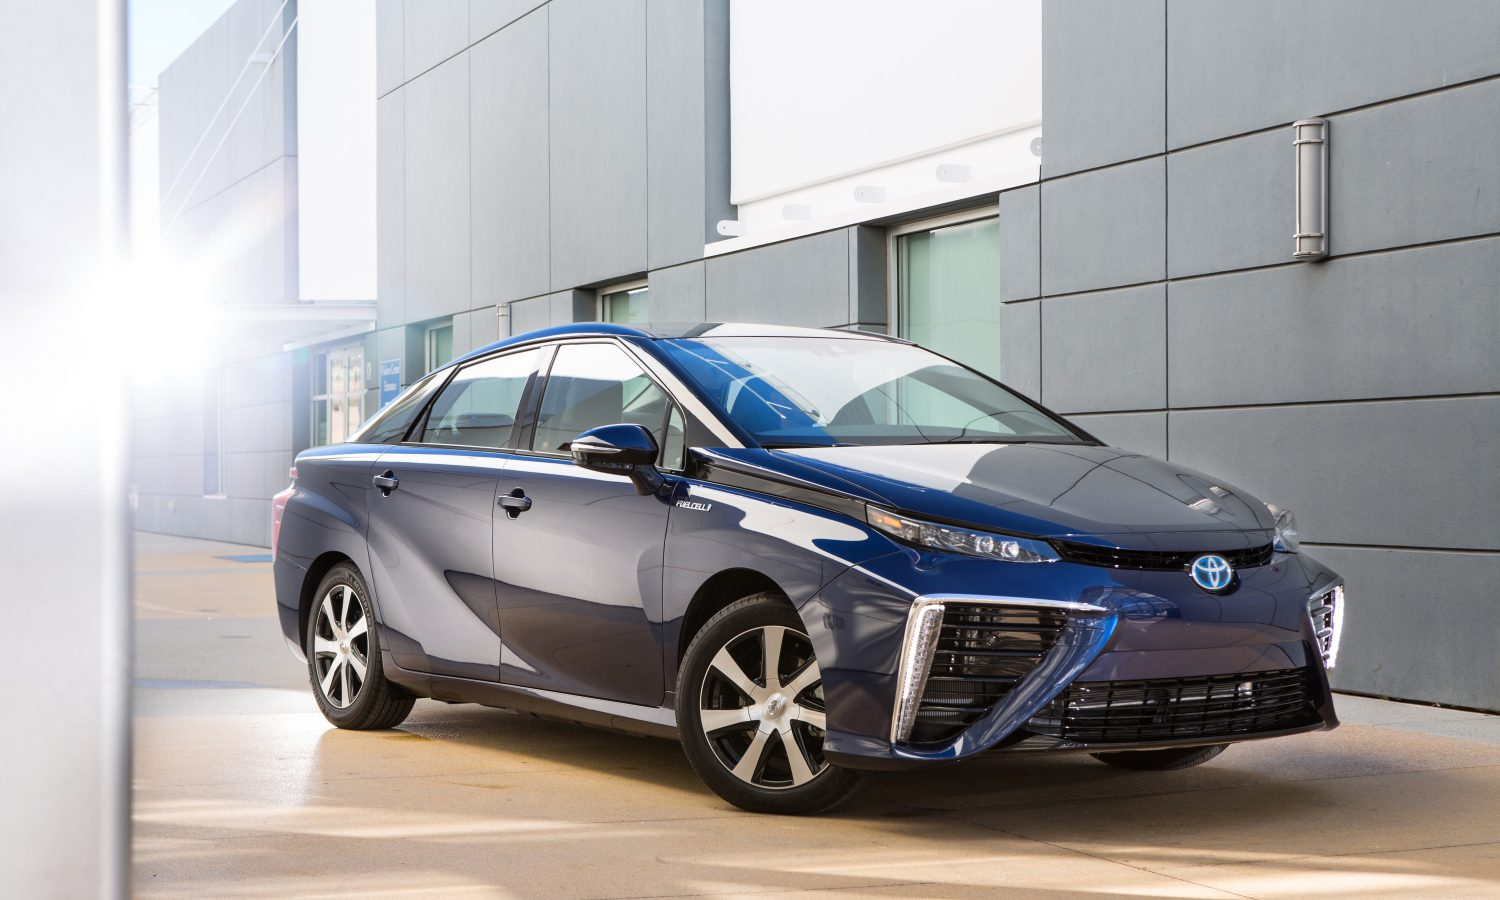 Best of What's New for 2014? The Toyota Fuel Cell Vehicle